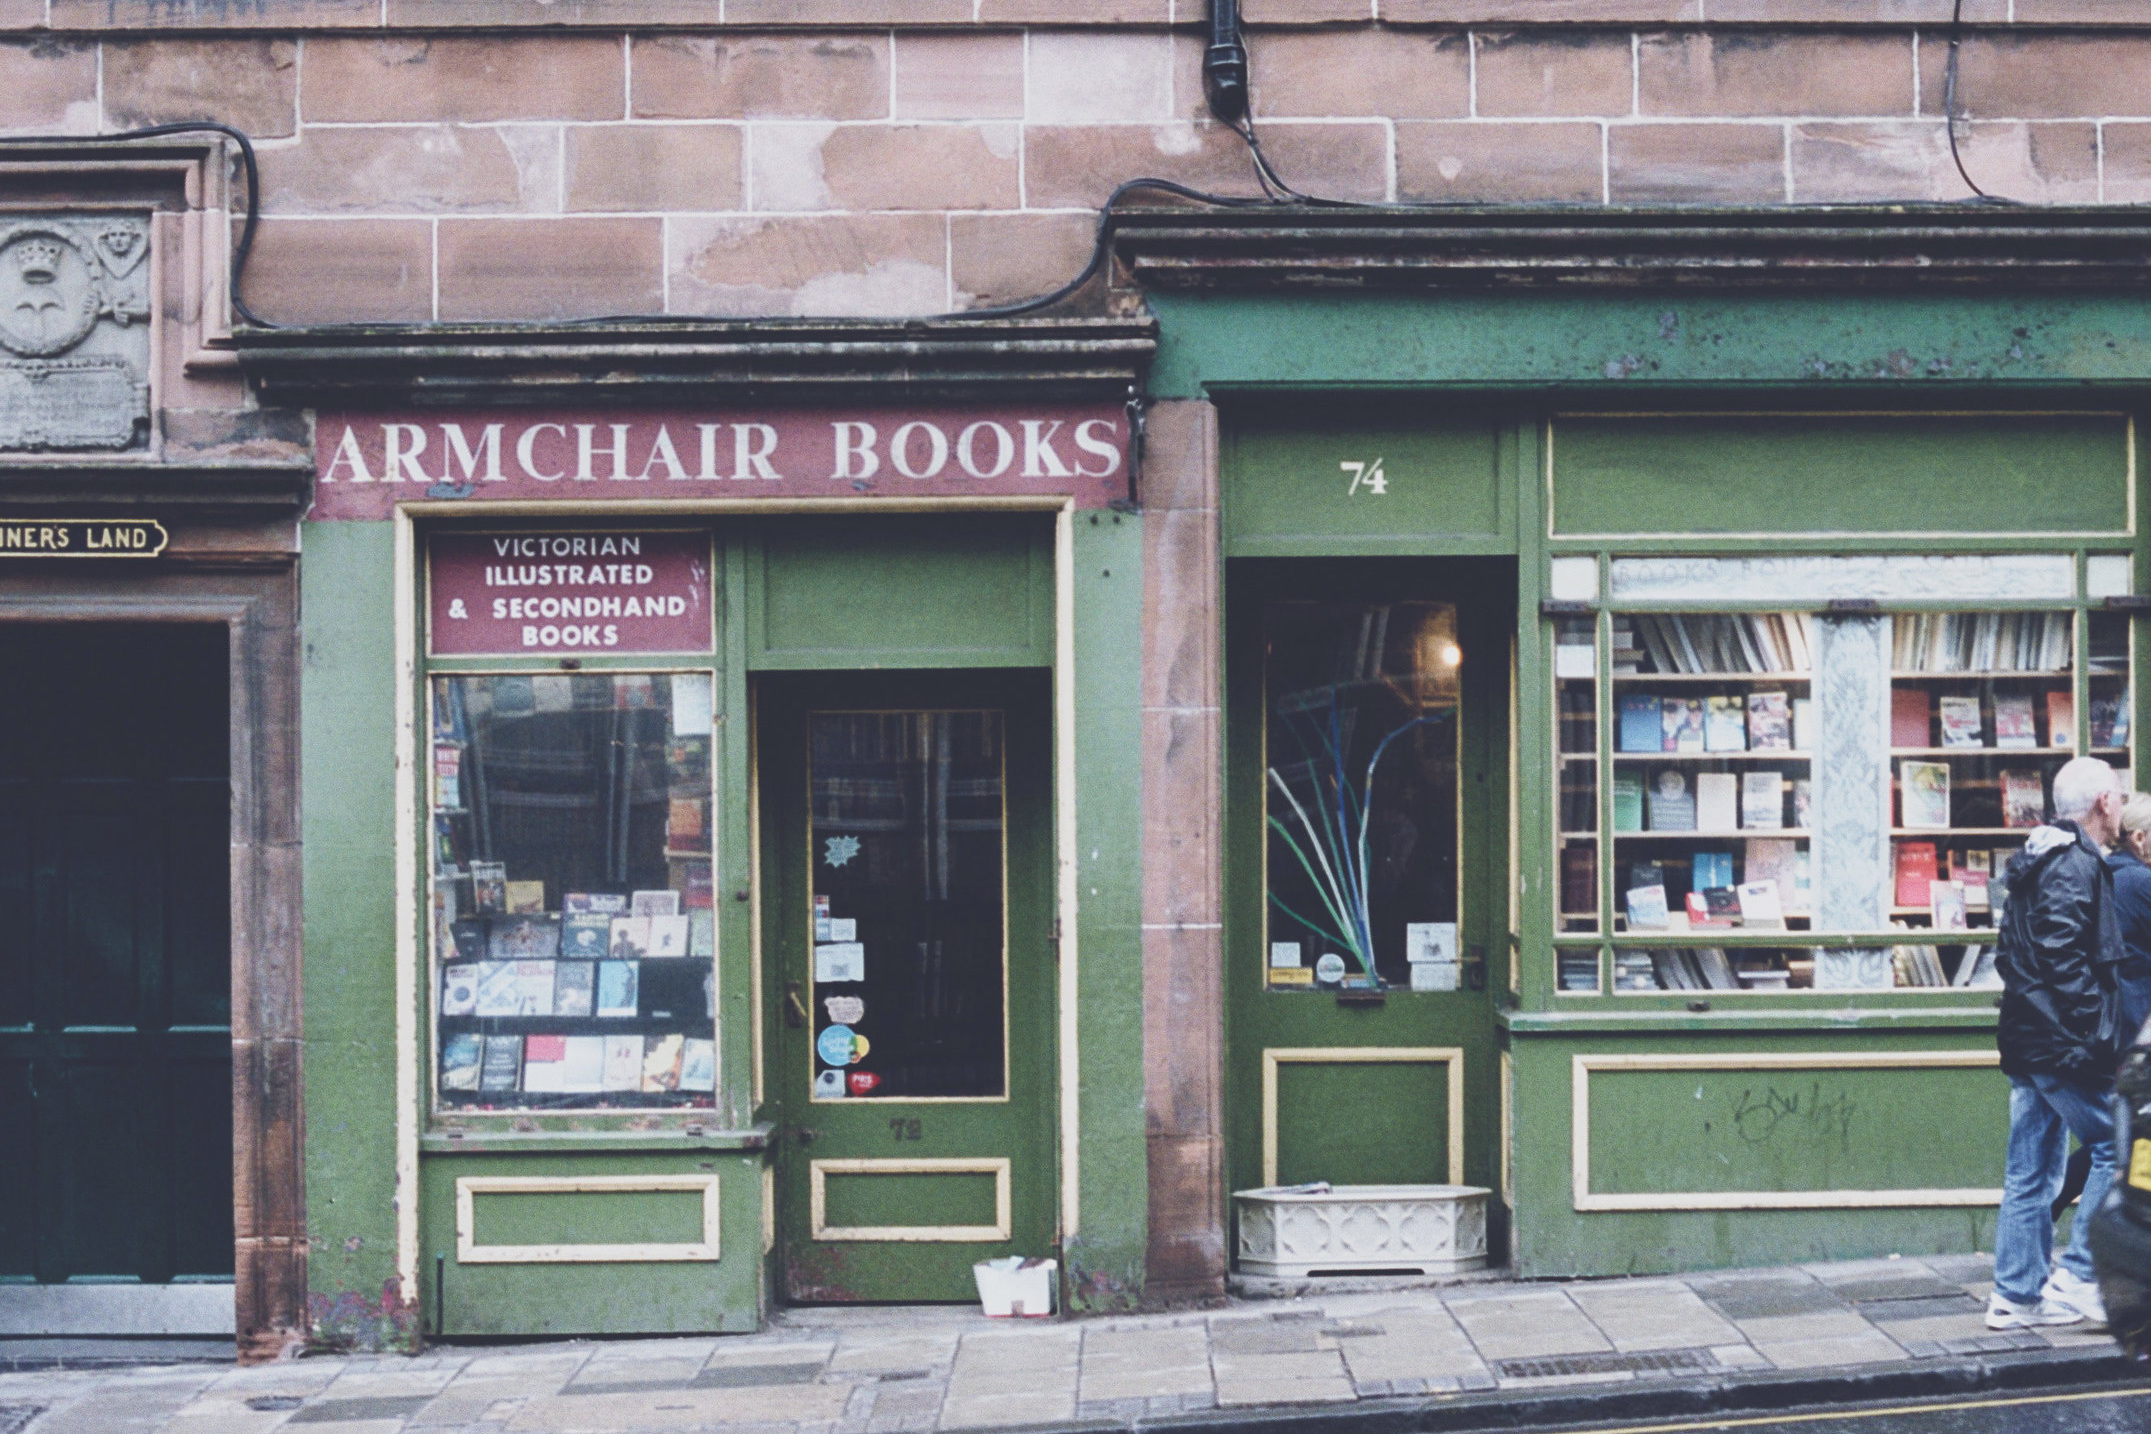 Store - Purchase ready-made items or place a custom order. (No, I do not sell armchairs. Books? Yes. Chairs? No.)